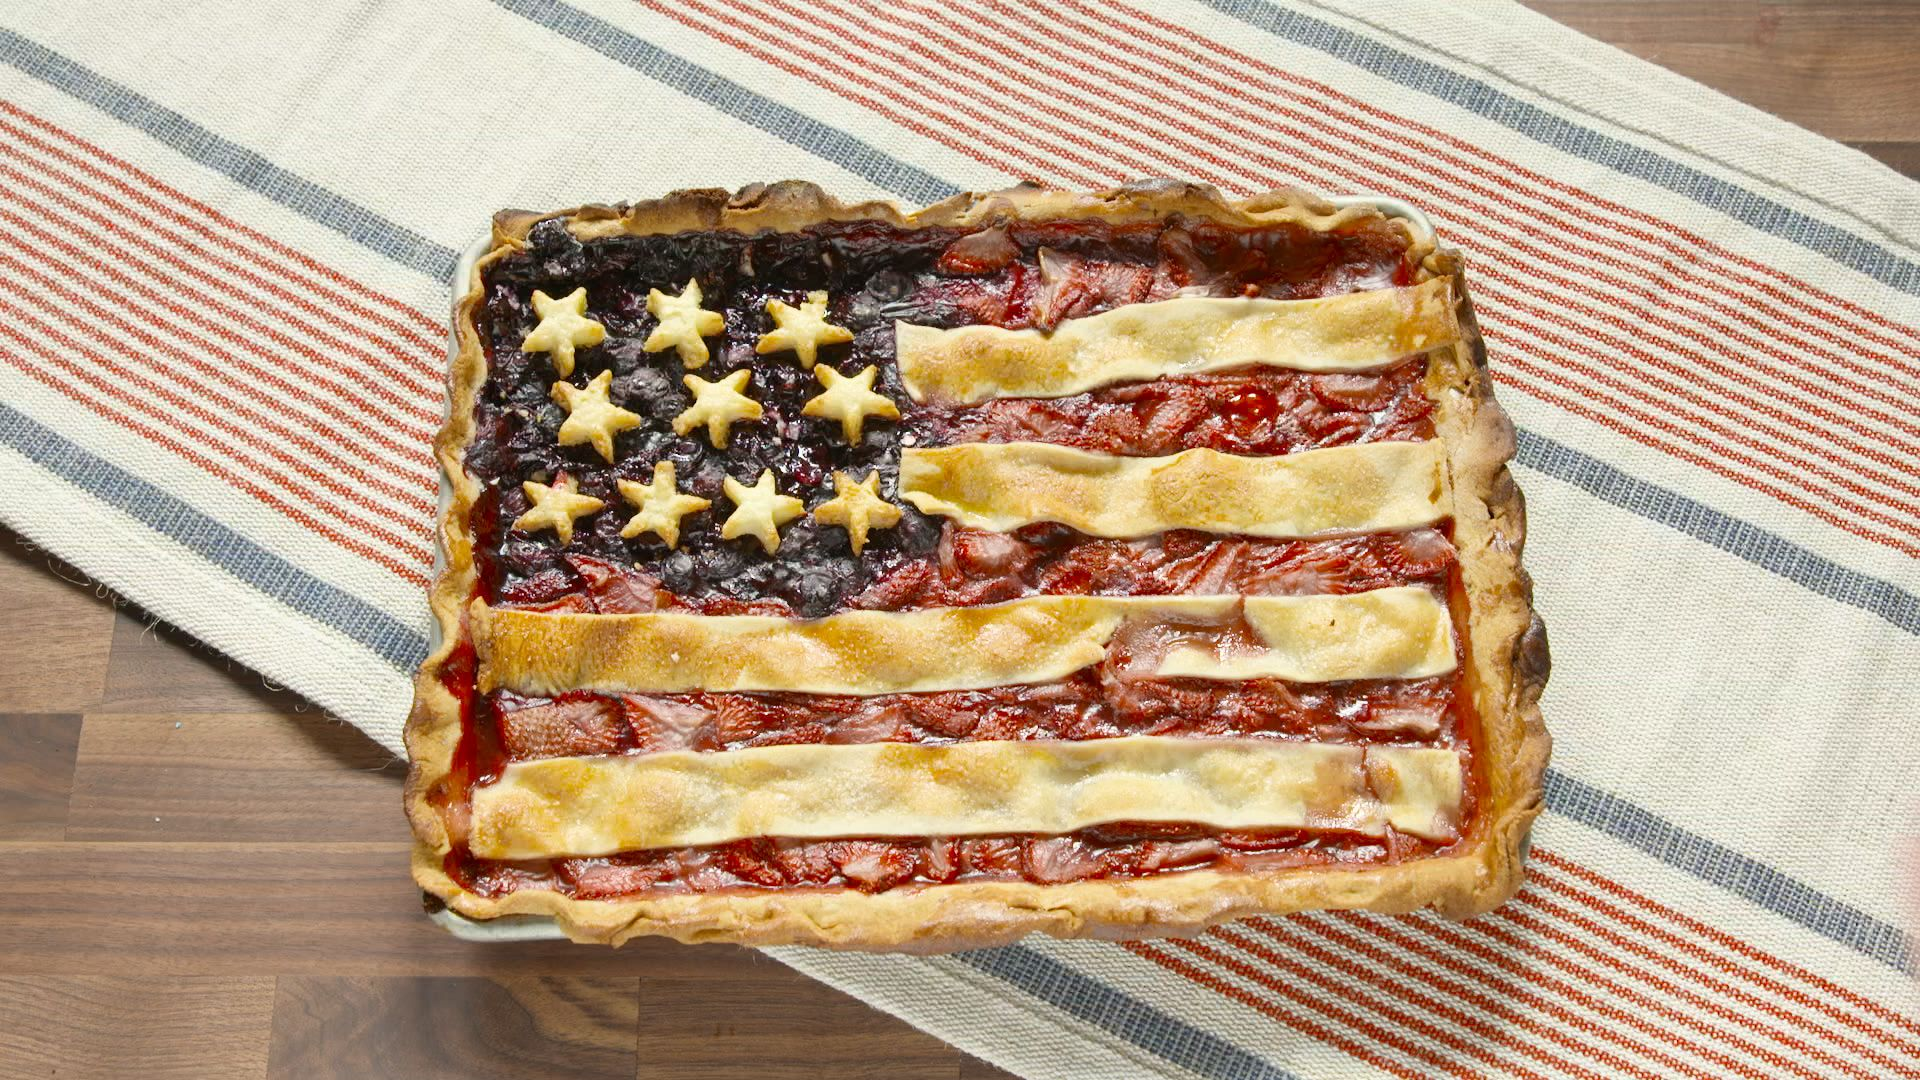 American pie forumfinder Image collections